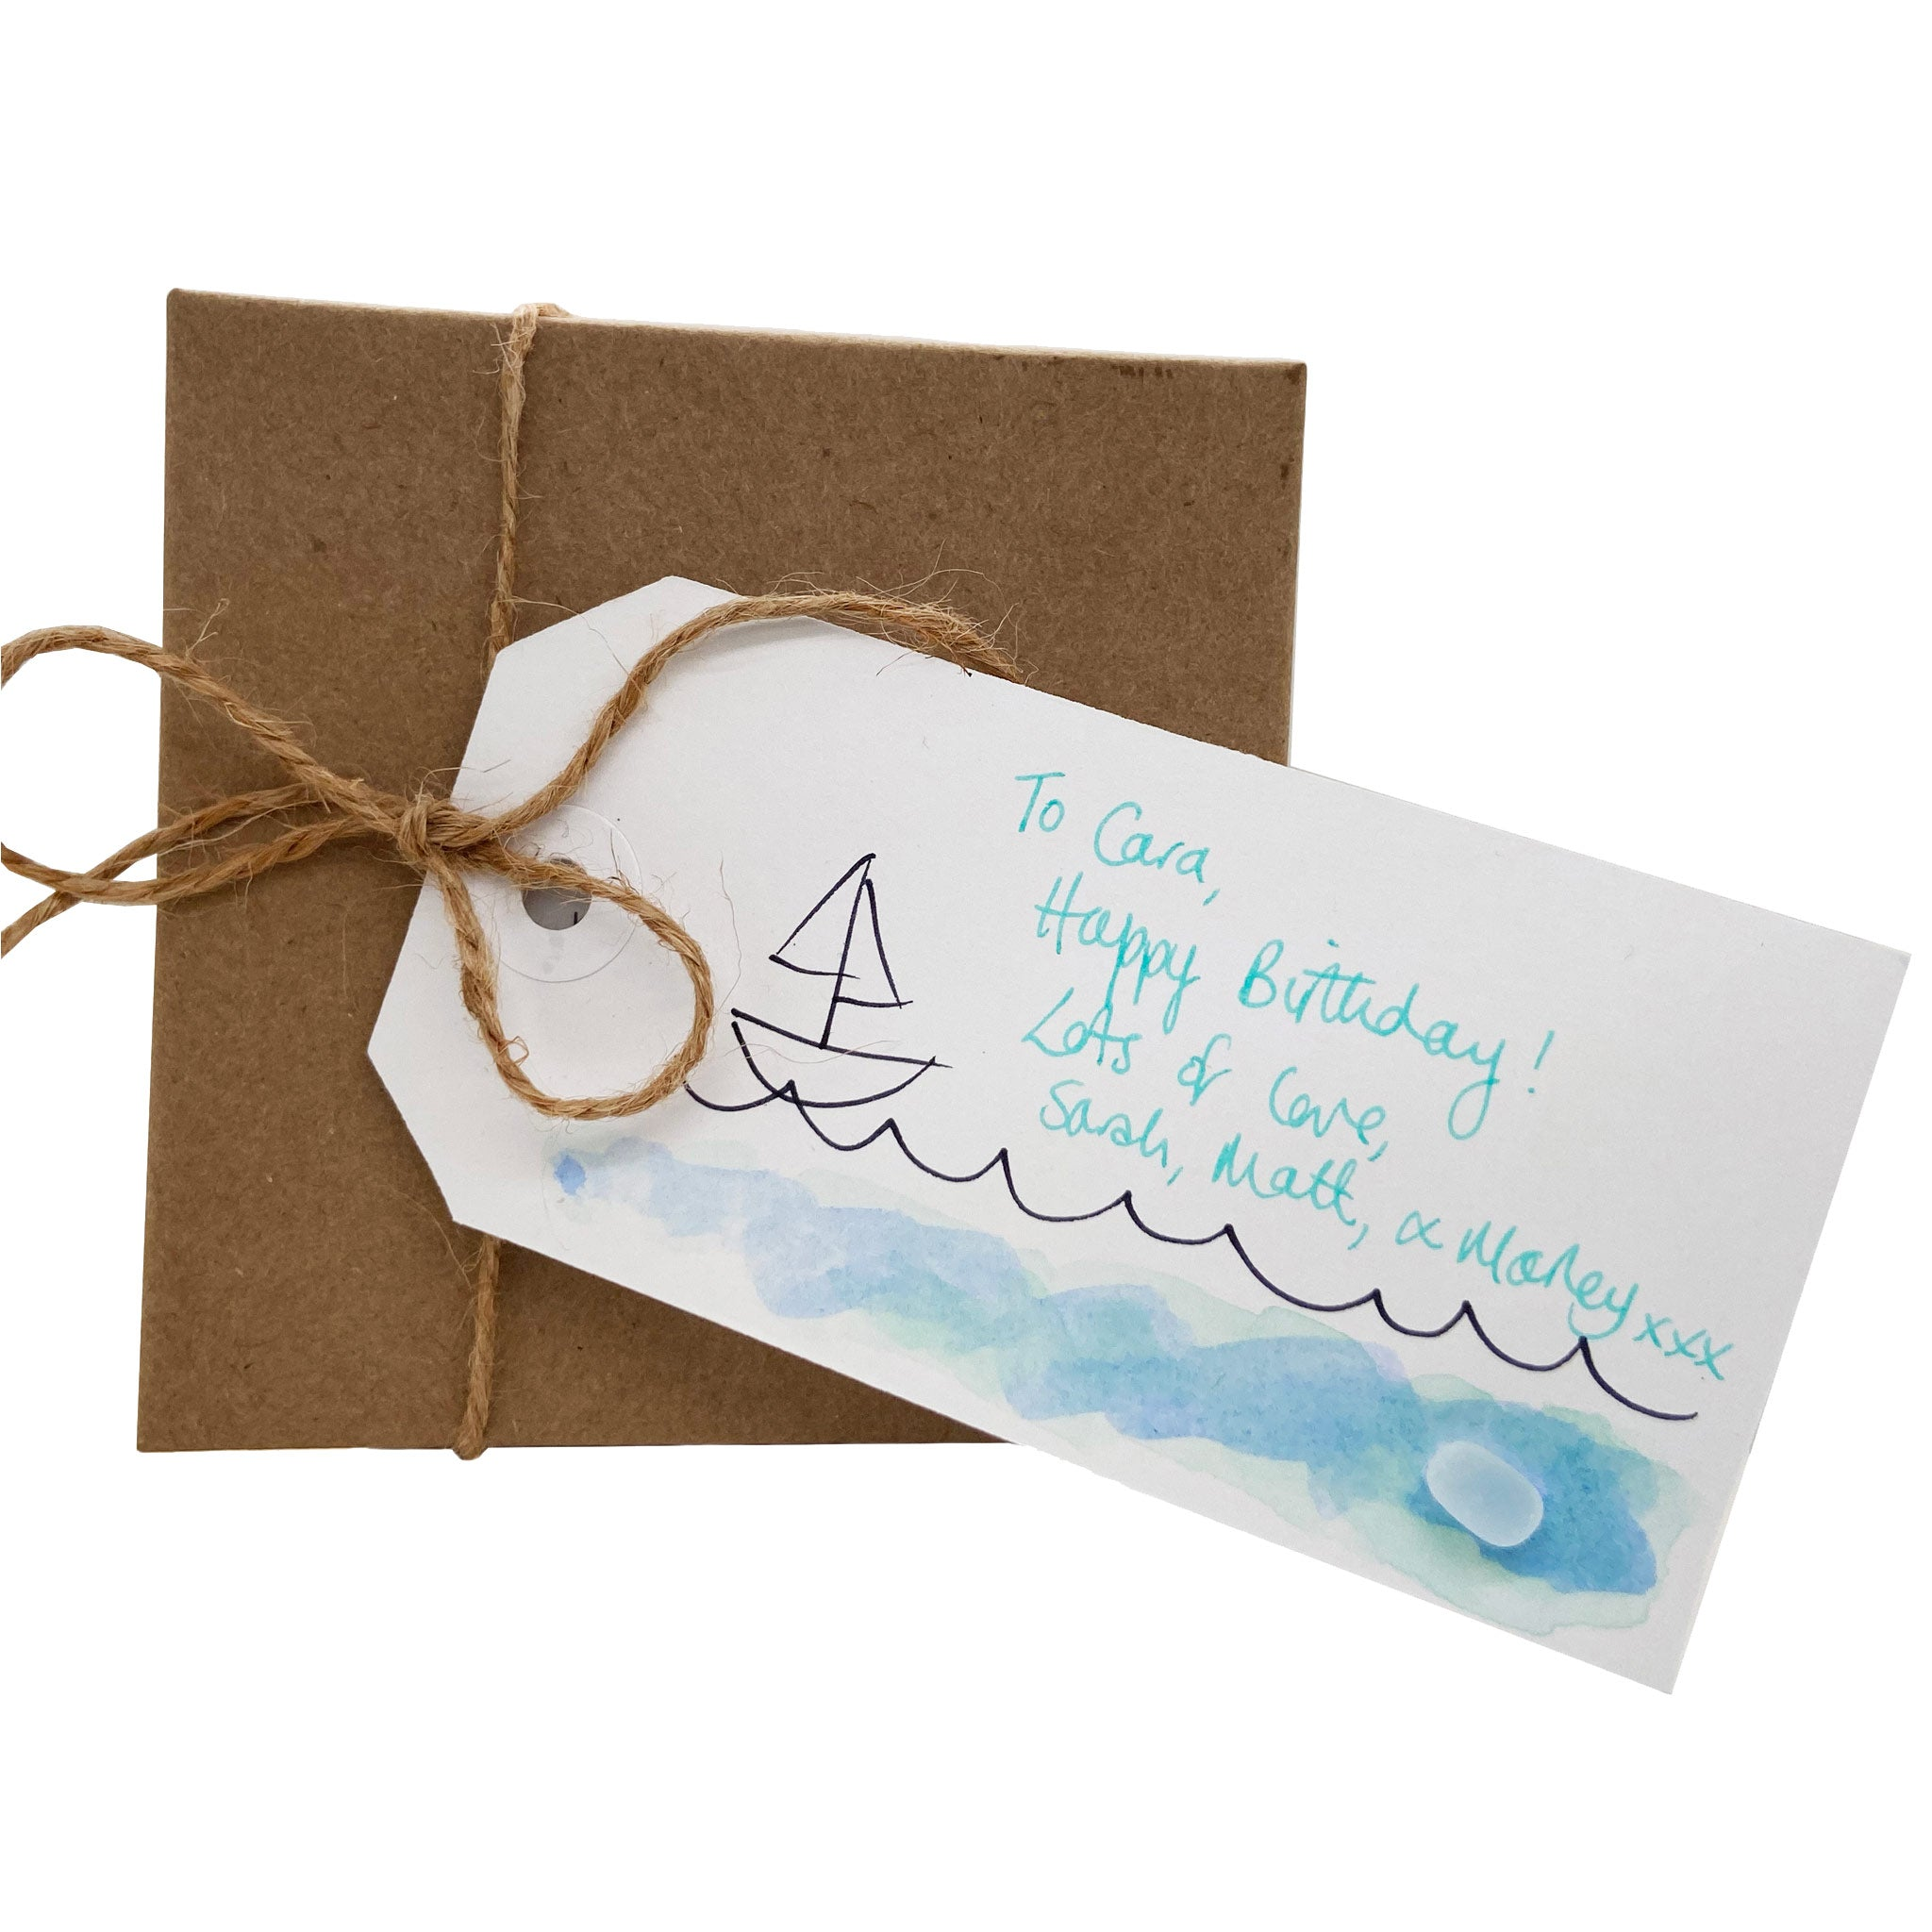 sea glass gift tag present kriket broadhurst jewellery Sydney